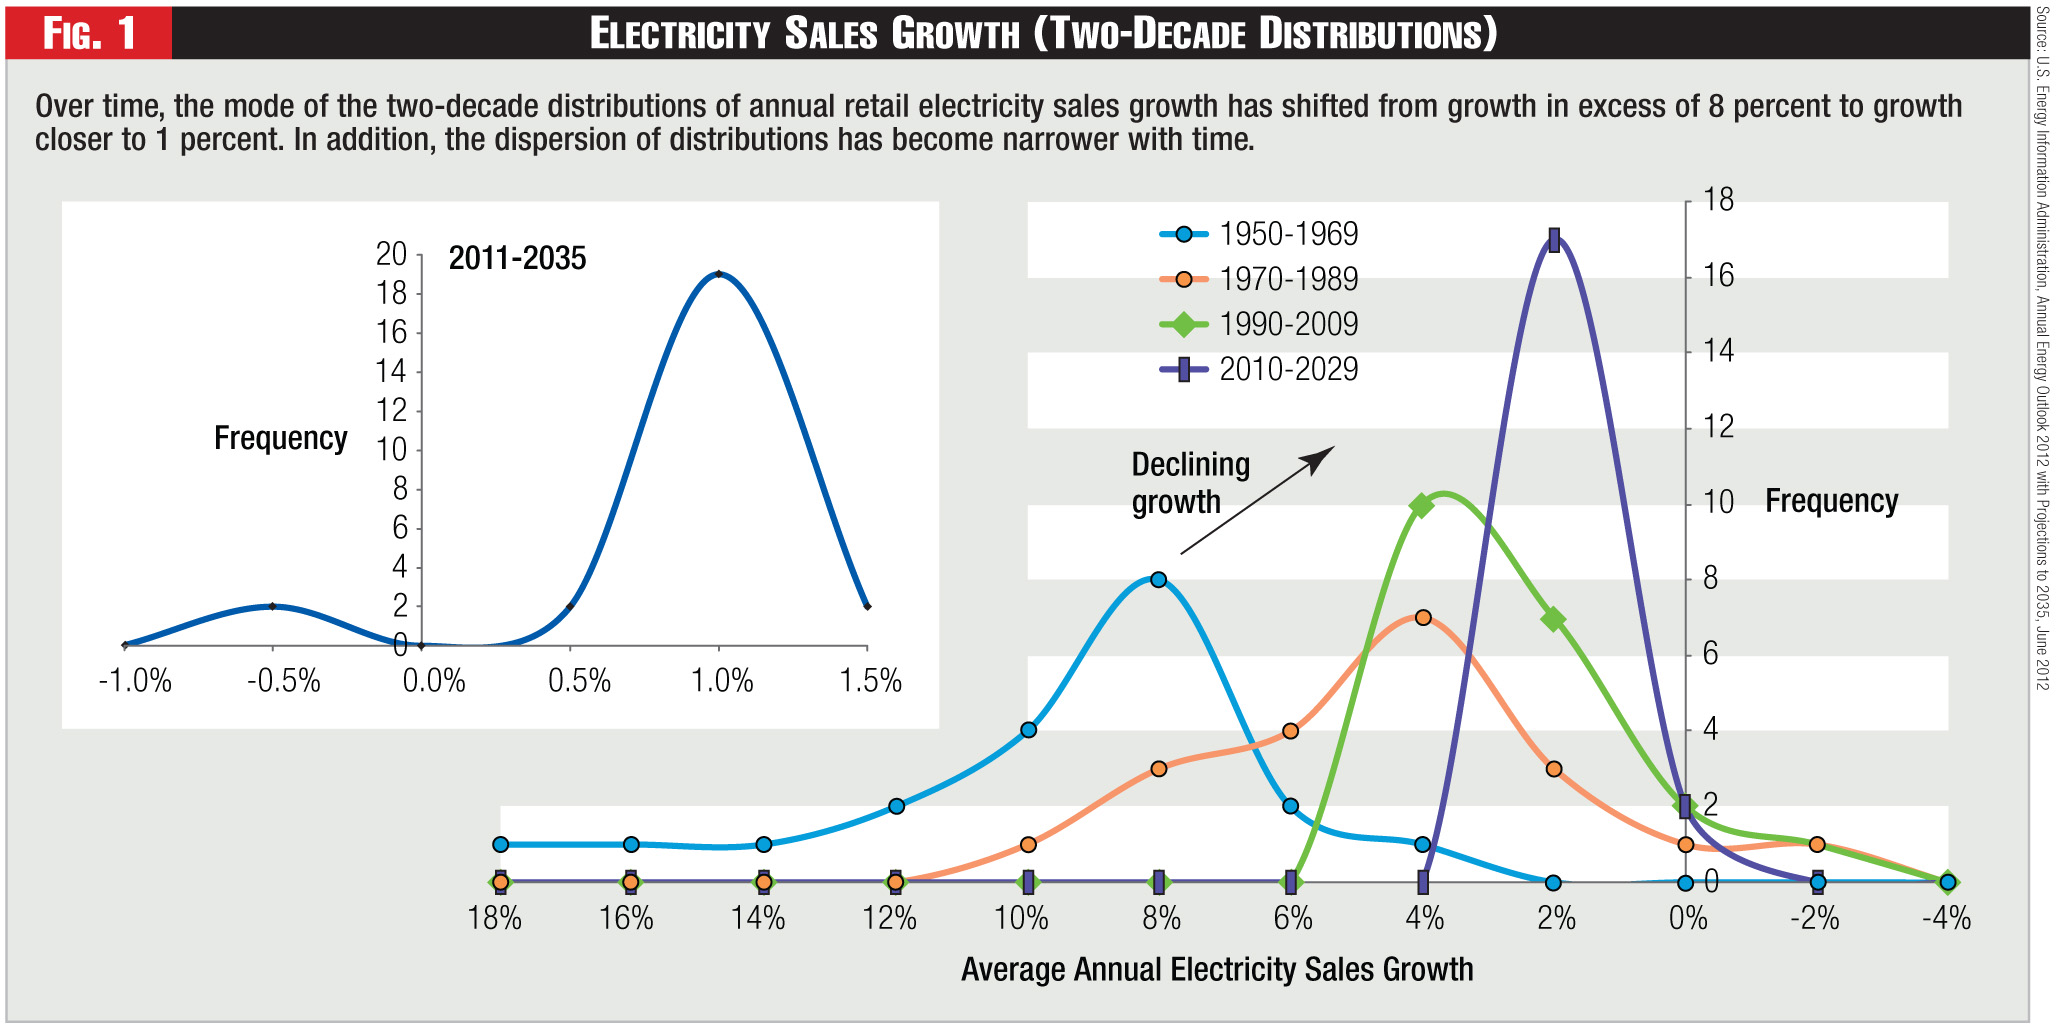 Figure 1 - Electricity Sales Growth (Two-Decade Distributions)